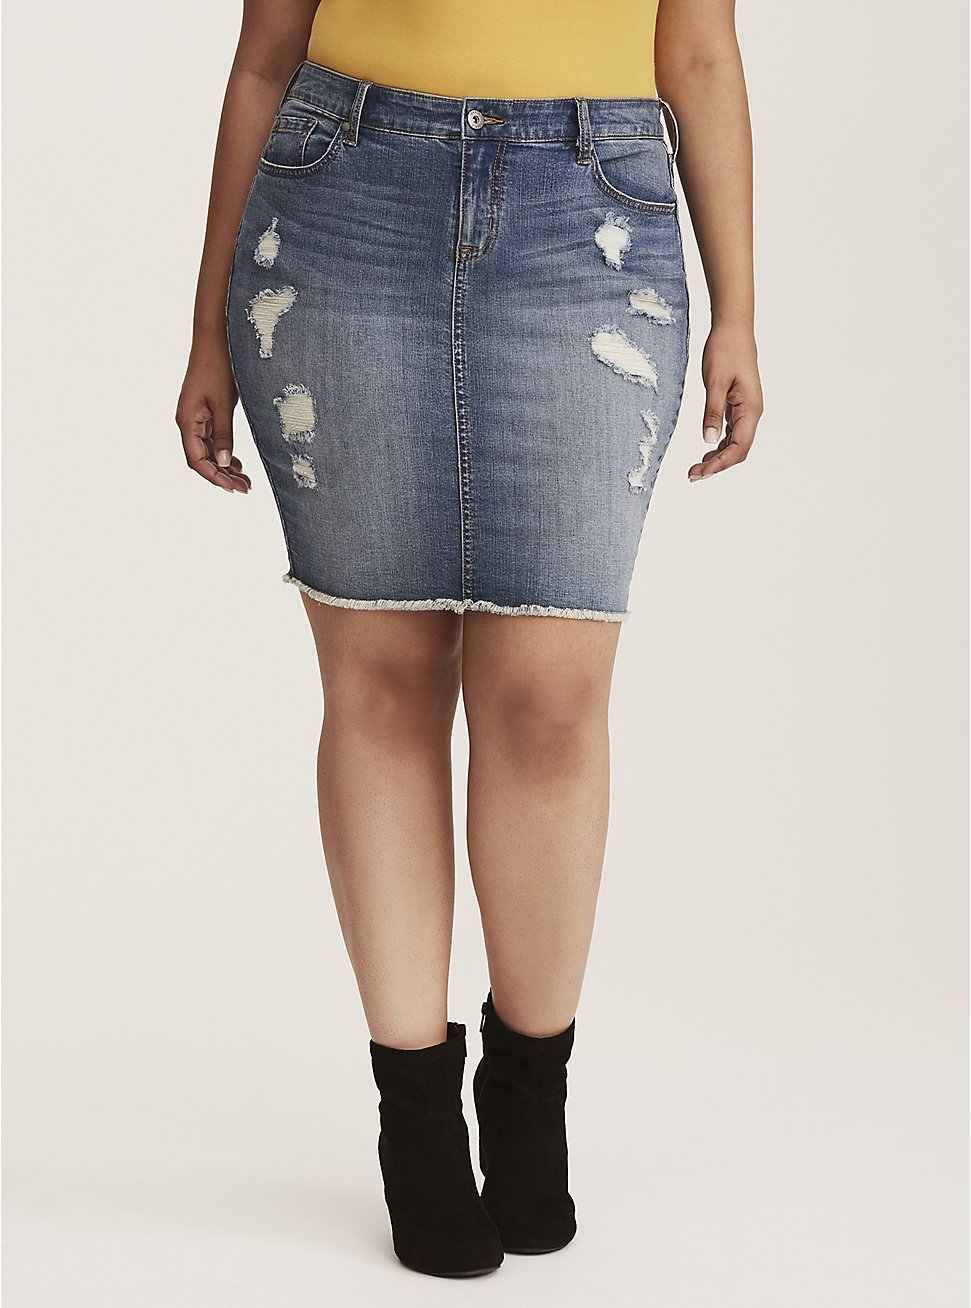 Denim Mini Skirt - Distressed Medium Wash, MEDIUM BLUE WASH, hi-res